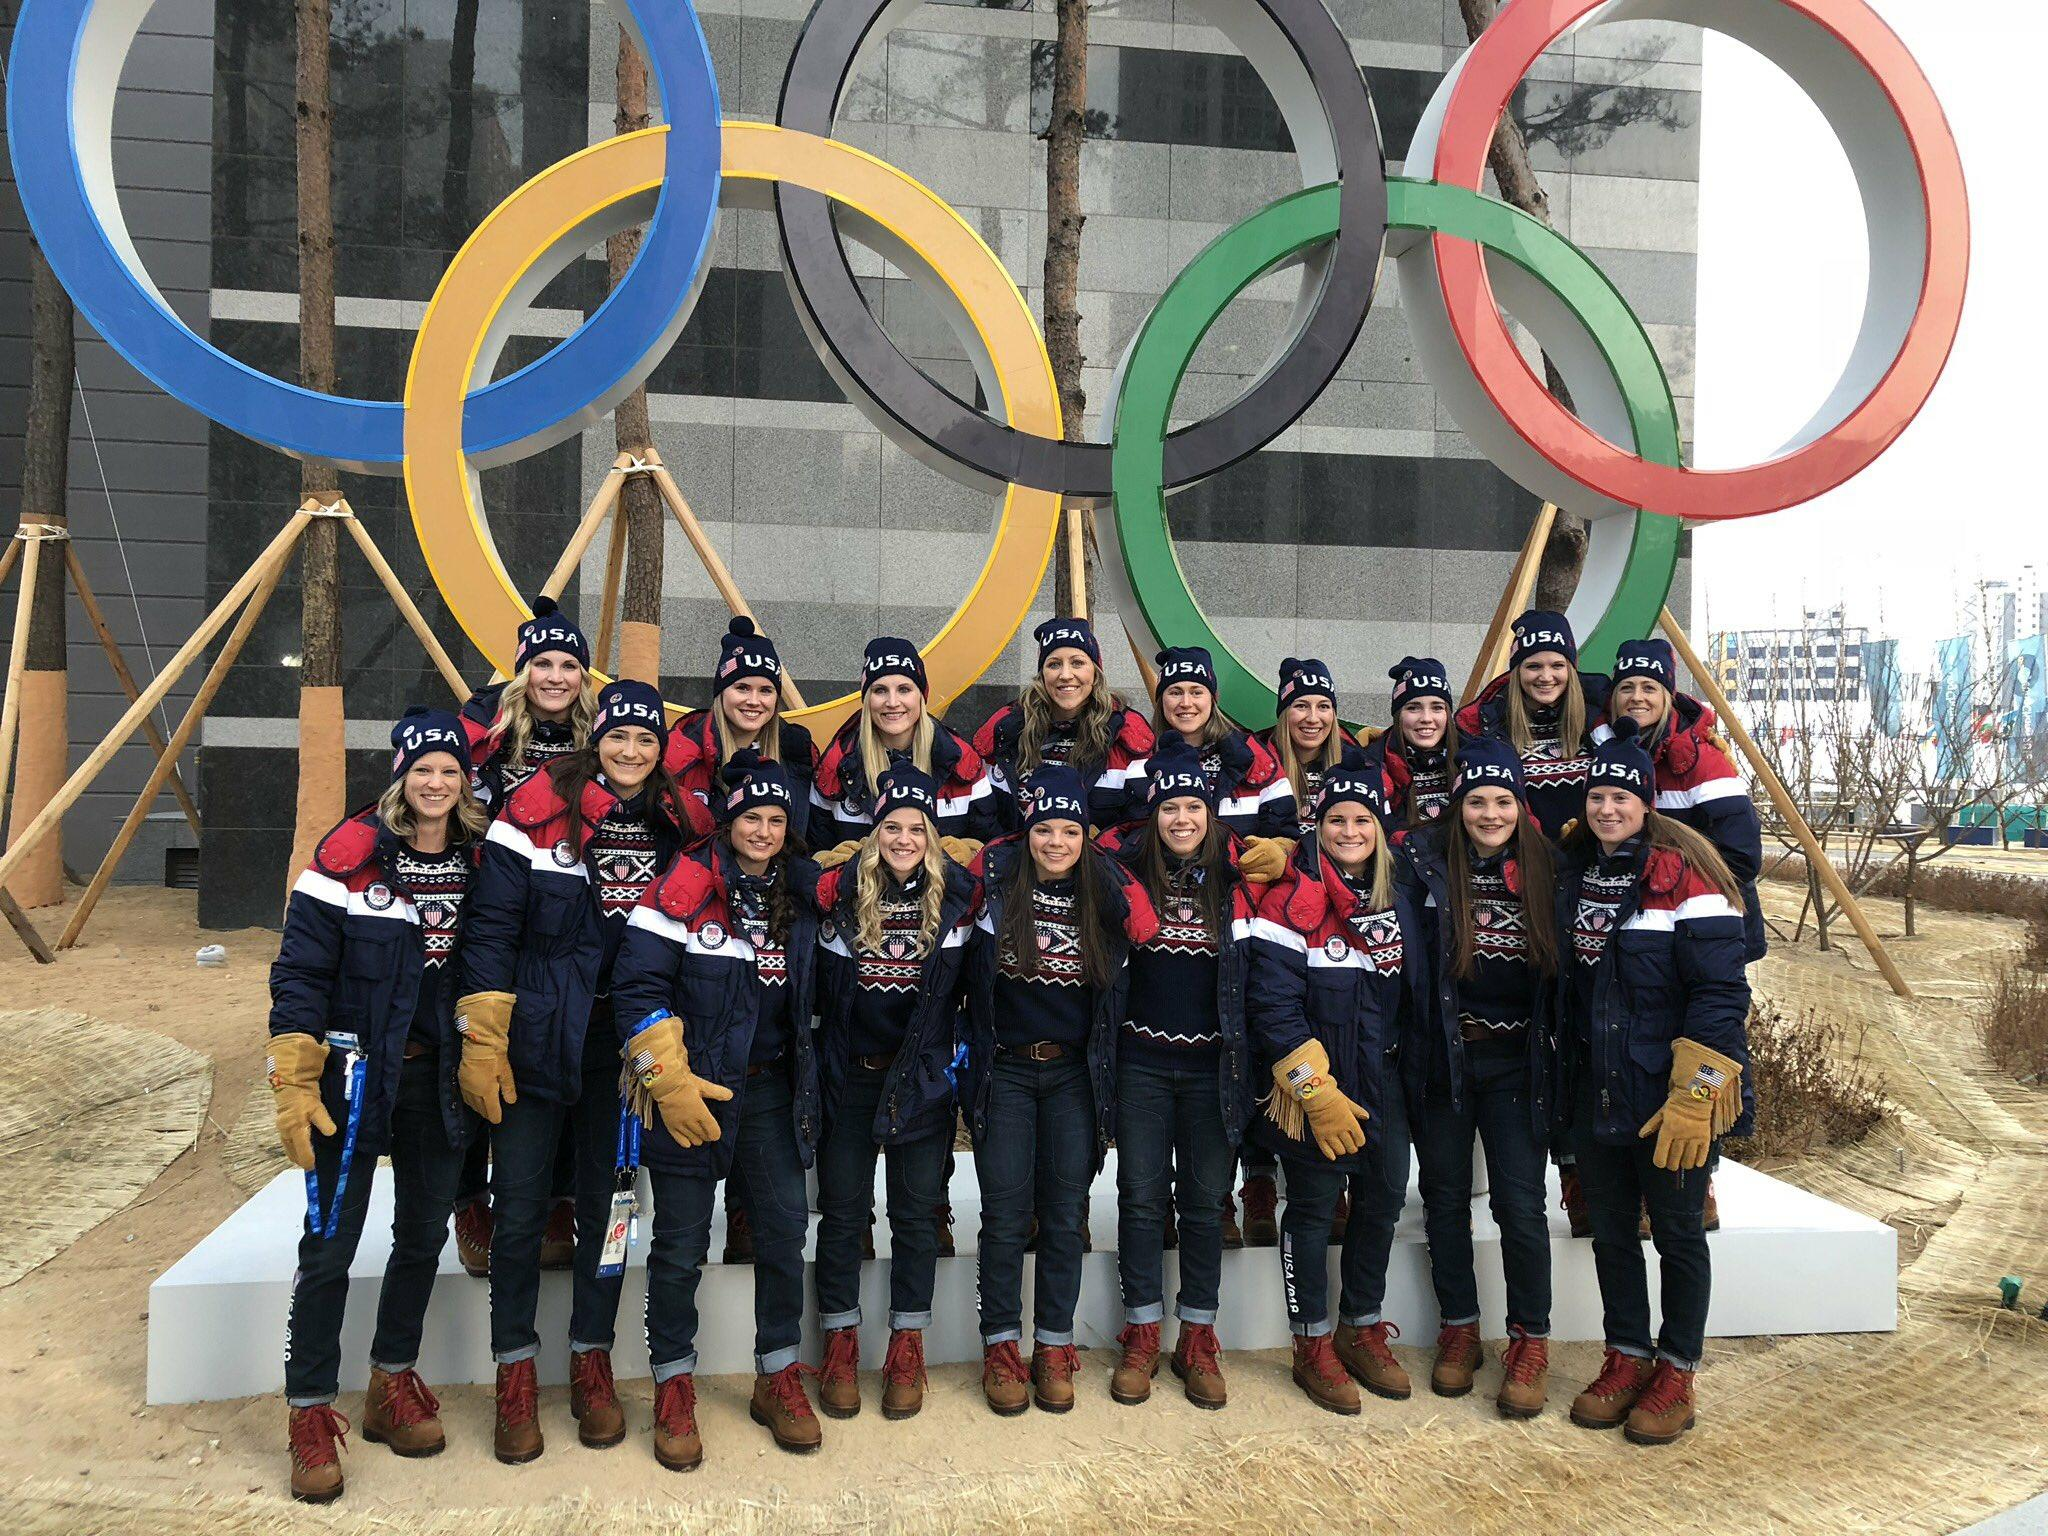 28fa7d07b 2018 - XXIII OLYMPIC WINTER GAMES Women